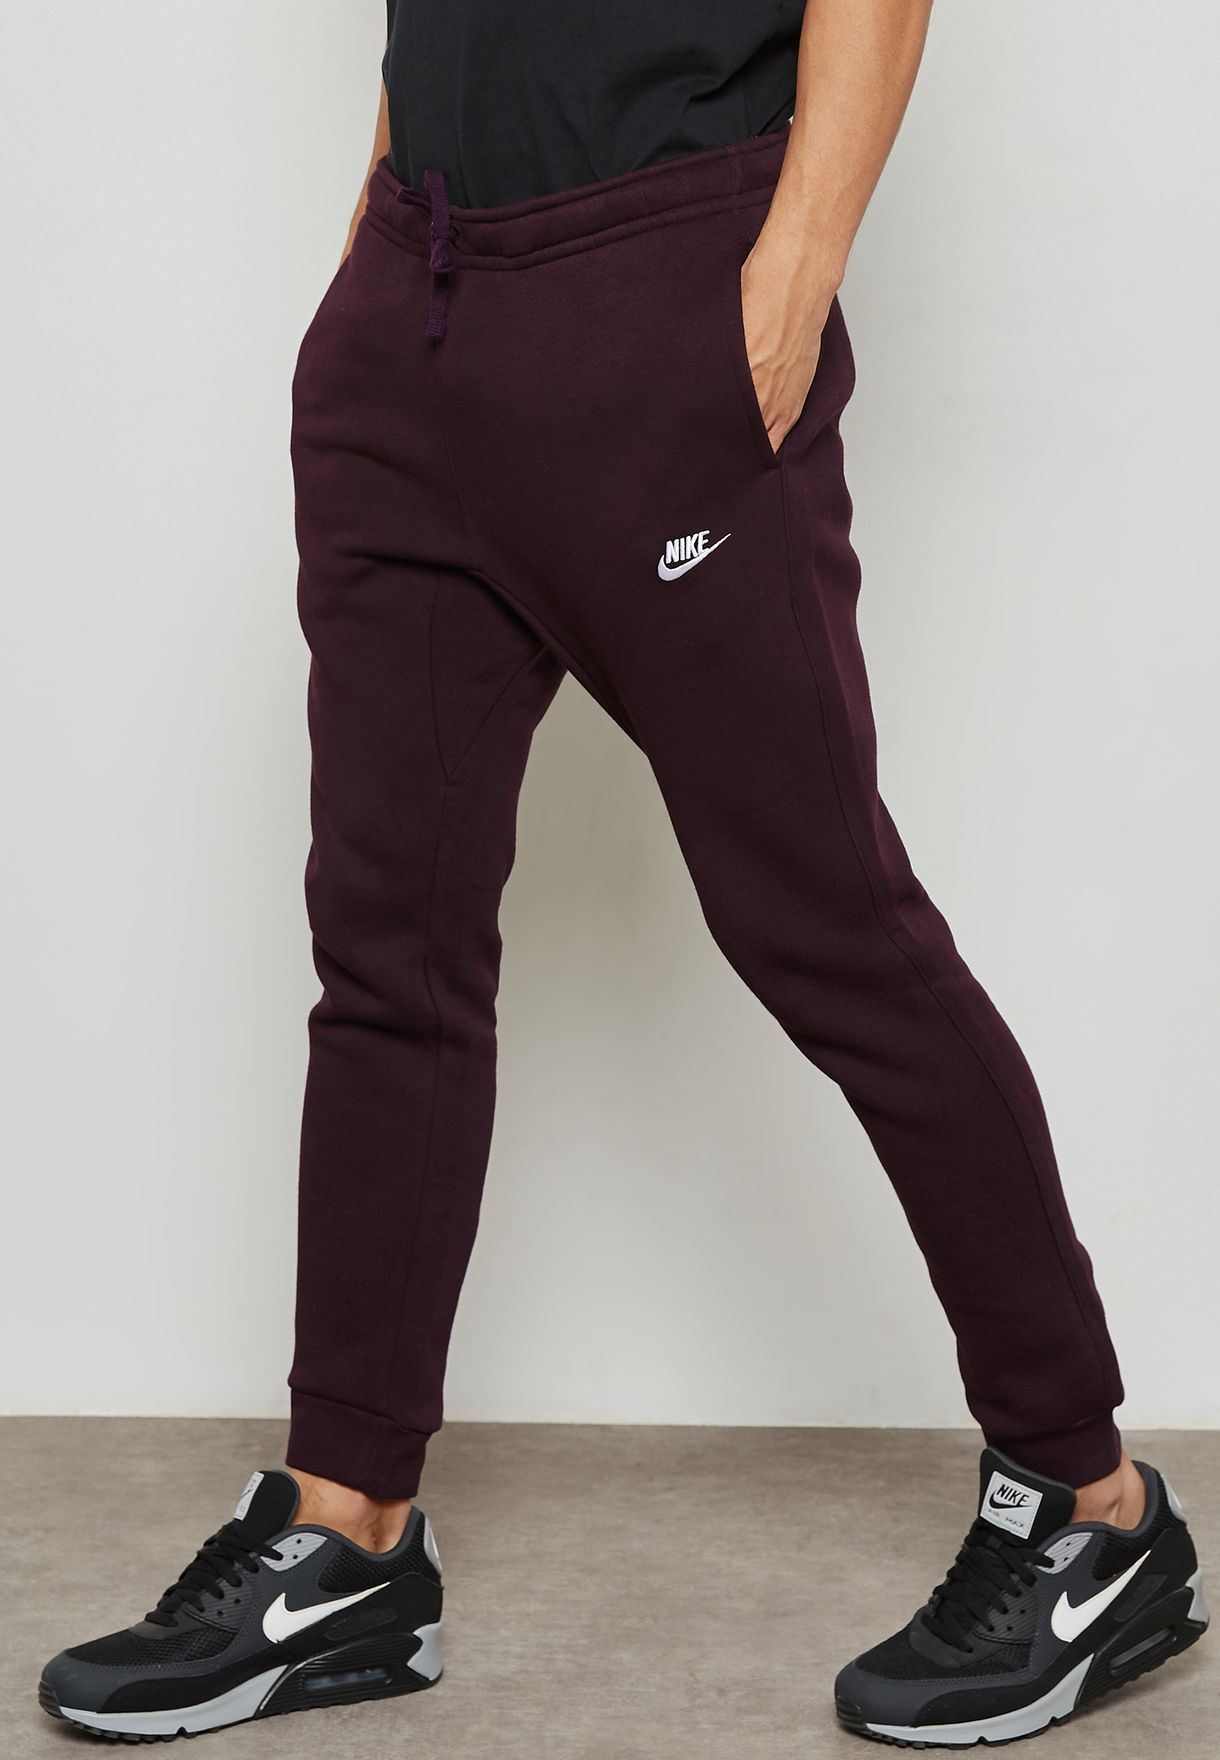 04aef41c2e8e Shop Nike red Club Fleece Sweatpants 804408-652 for Men in UAE ...